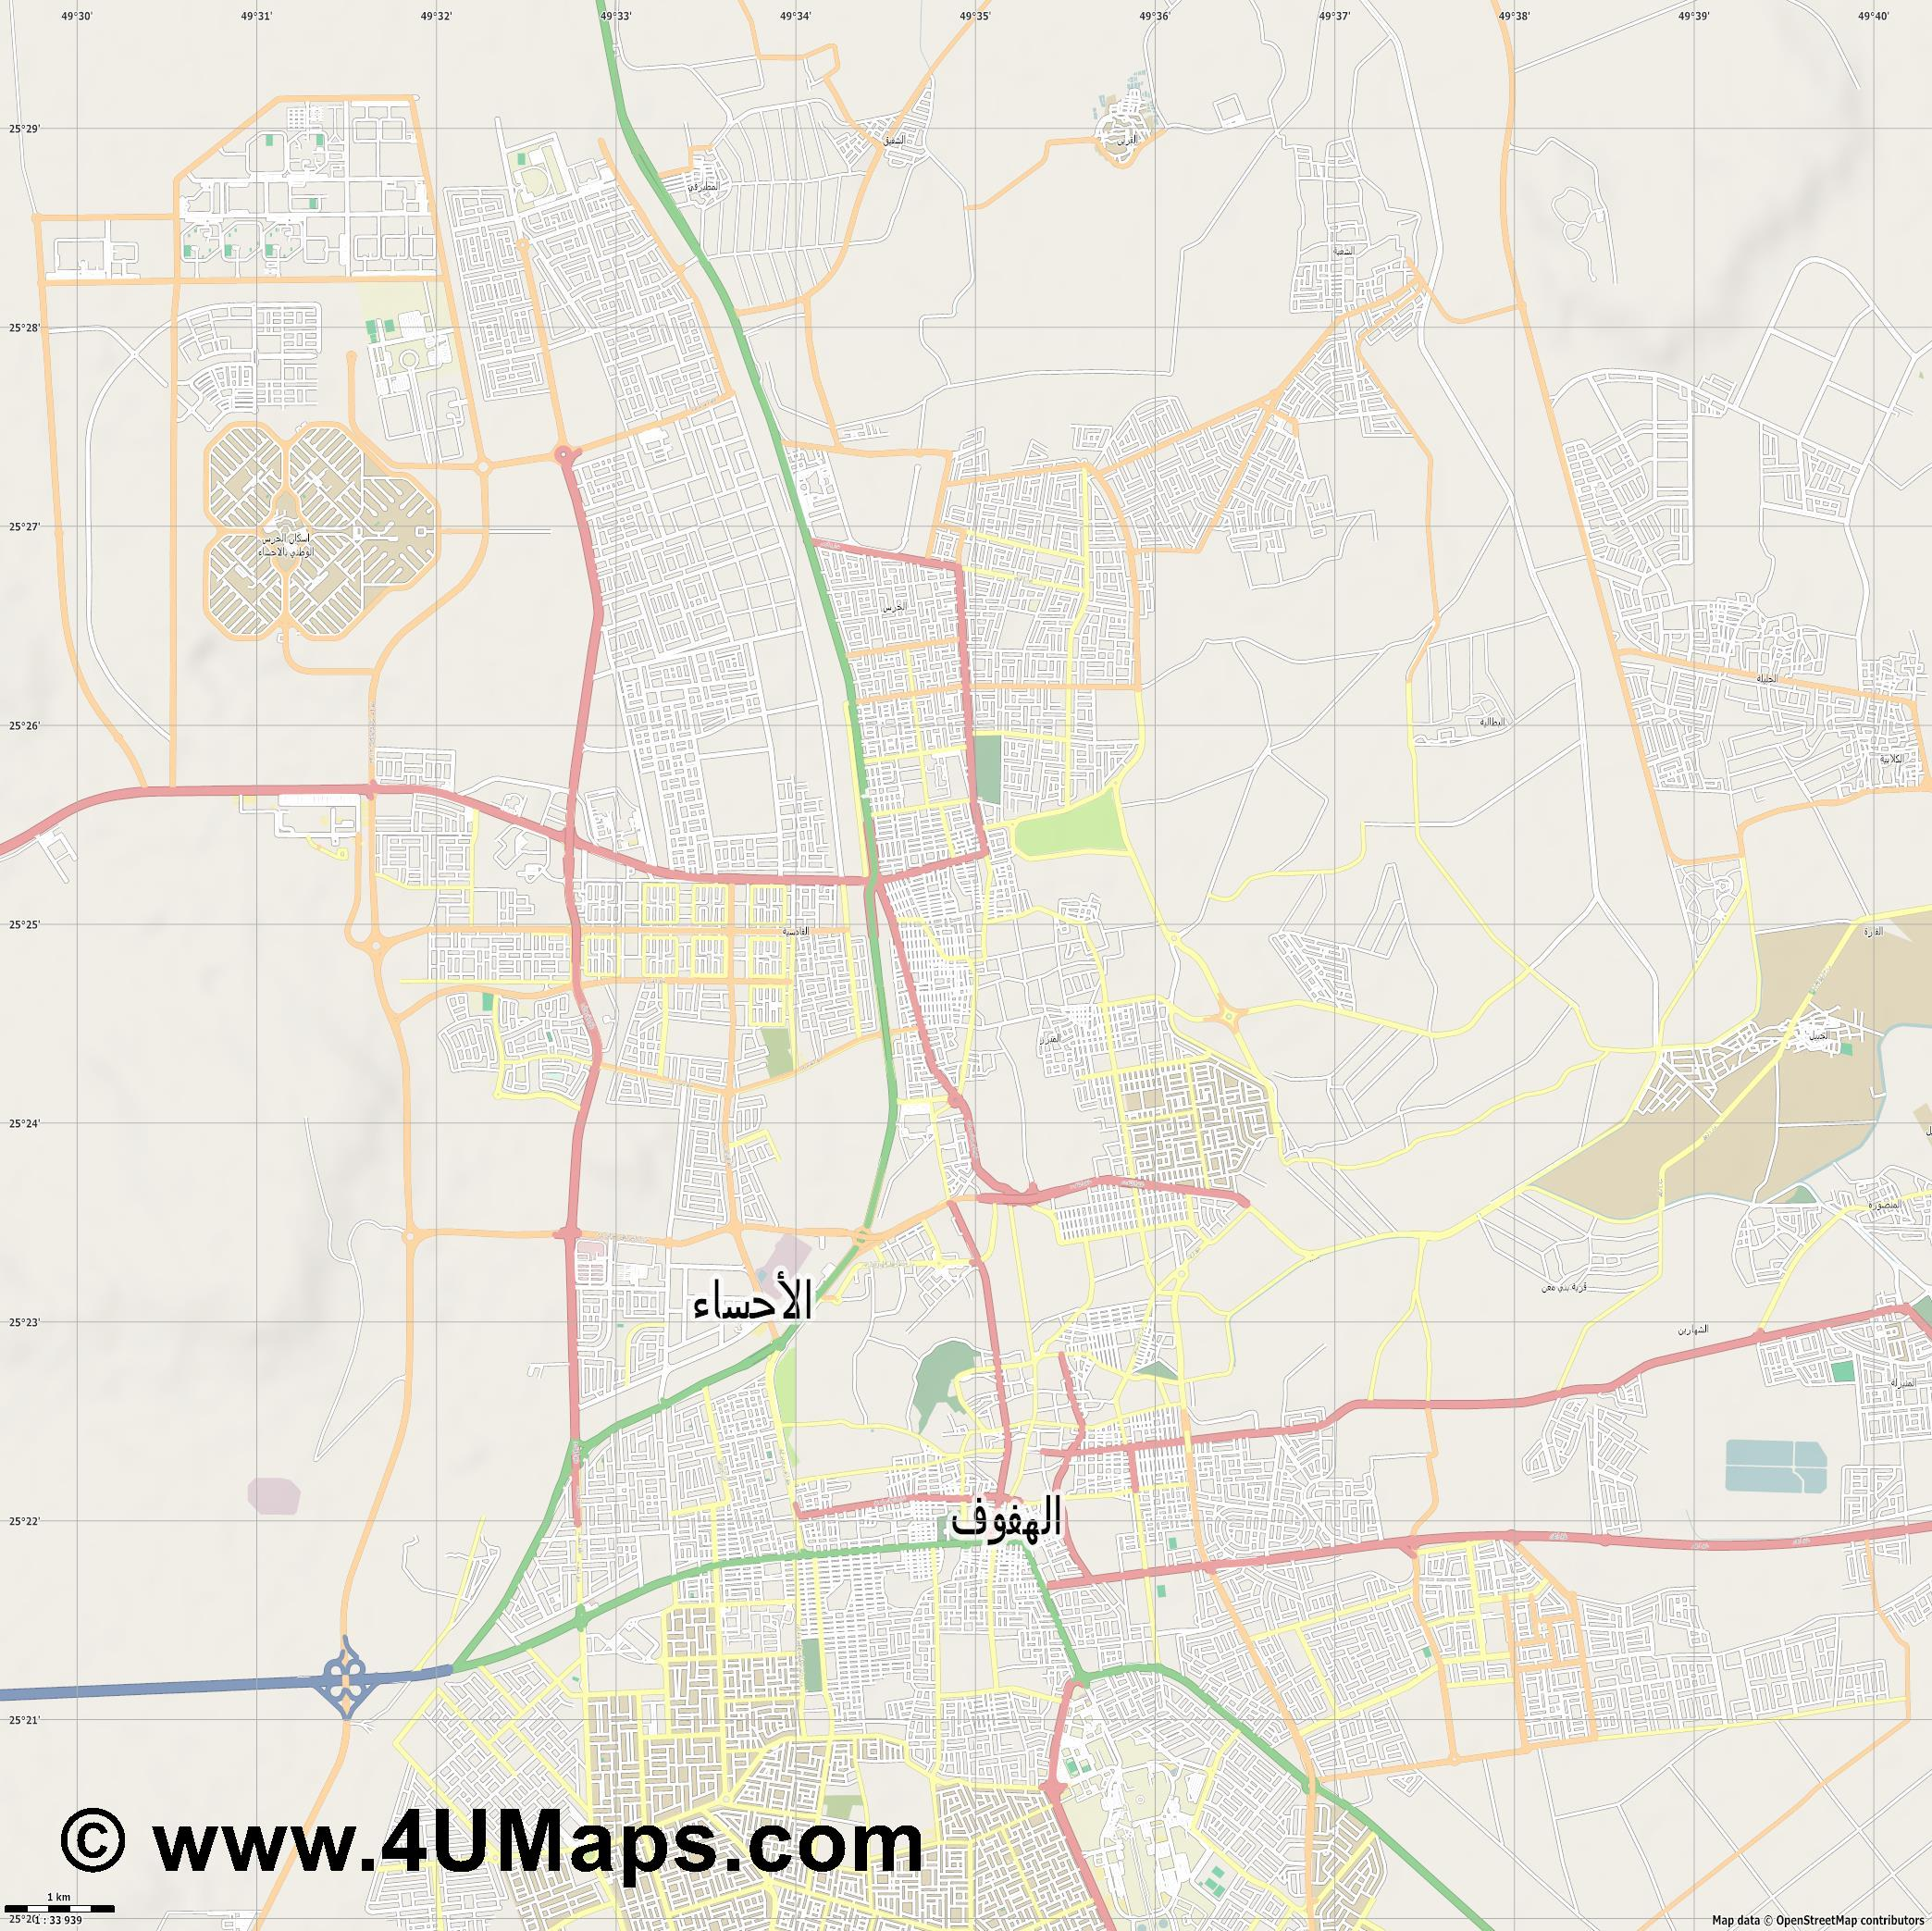 المبرز Mubarraz  jpg high detail, large area preview vector city map